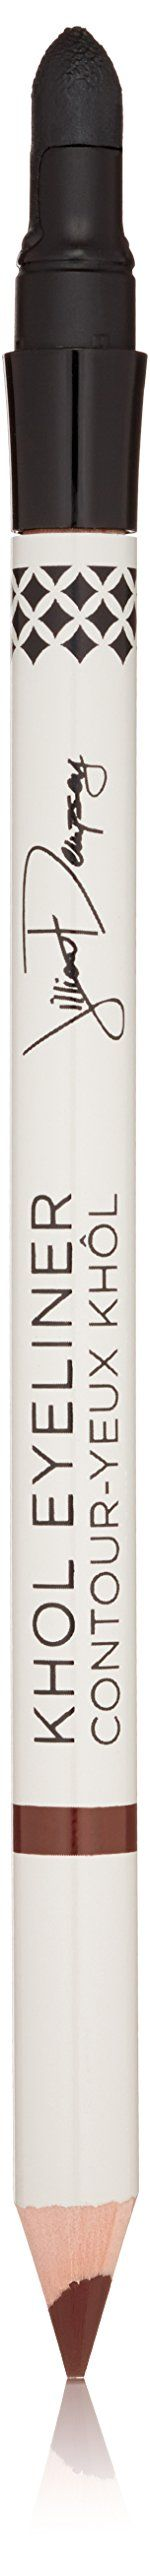 Jillian Dempsey Natural Khôl Eyeliner, Rich Brown. Created by celebrity makeup artist Jillian Dempsey to deliver an instant smoky eye. This luxurious liner is made with organic jojoba oil, organic shea butter and marula oil to give the product a smooth, waterproof finish. The built-in smudger allows you to blend the color for a soft-focus look.